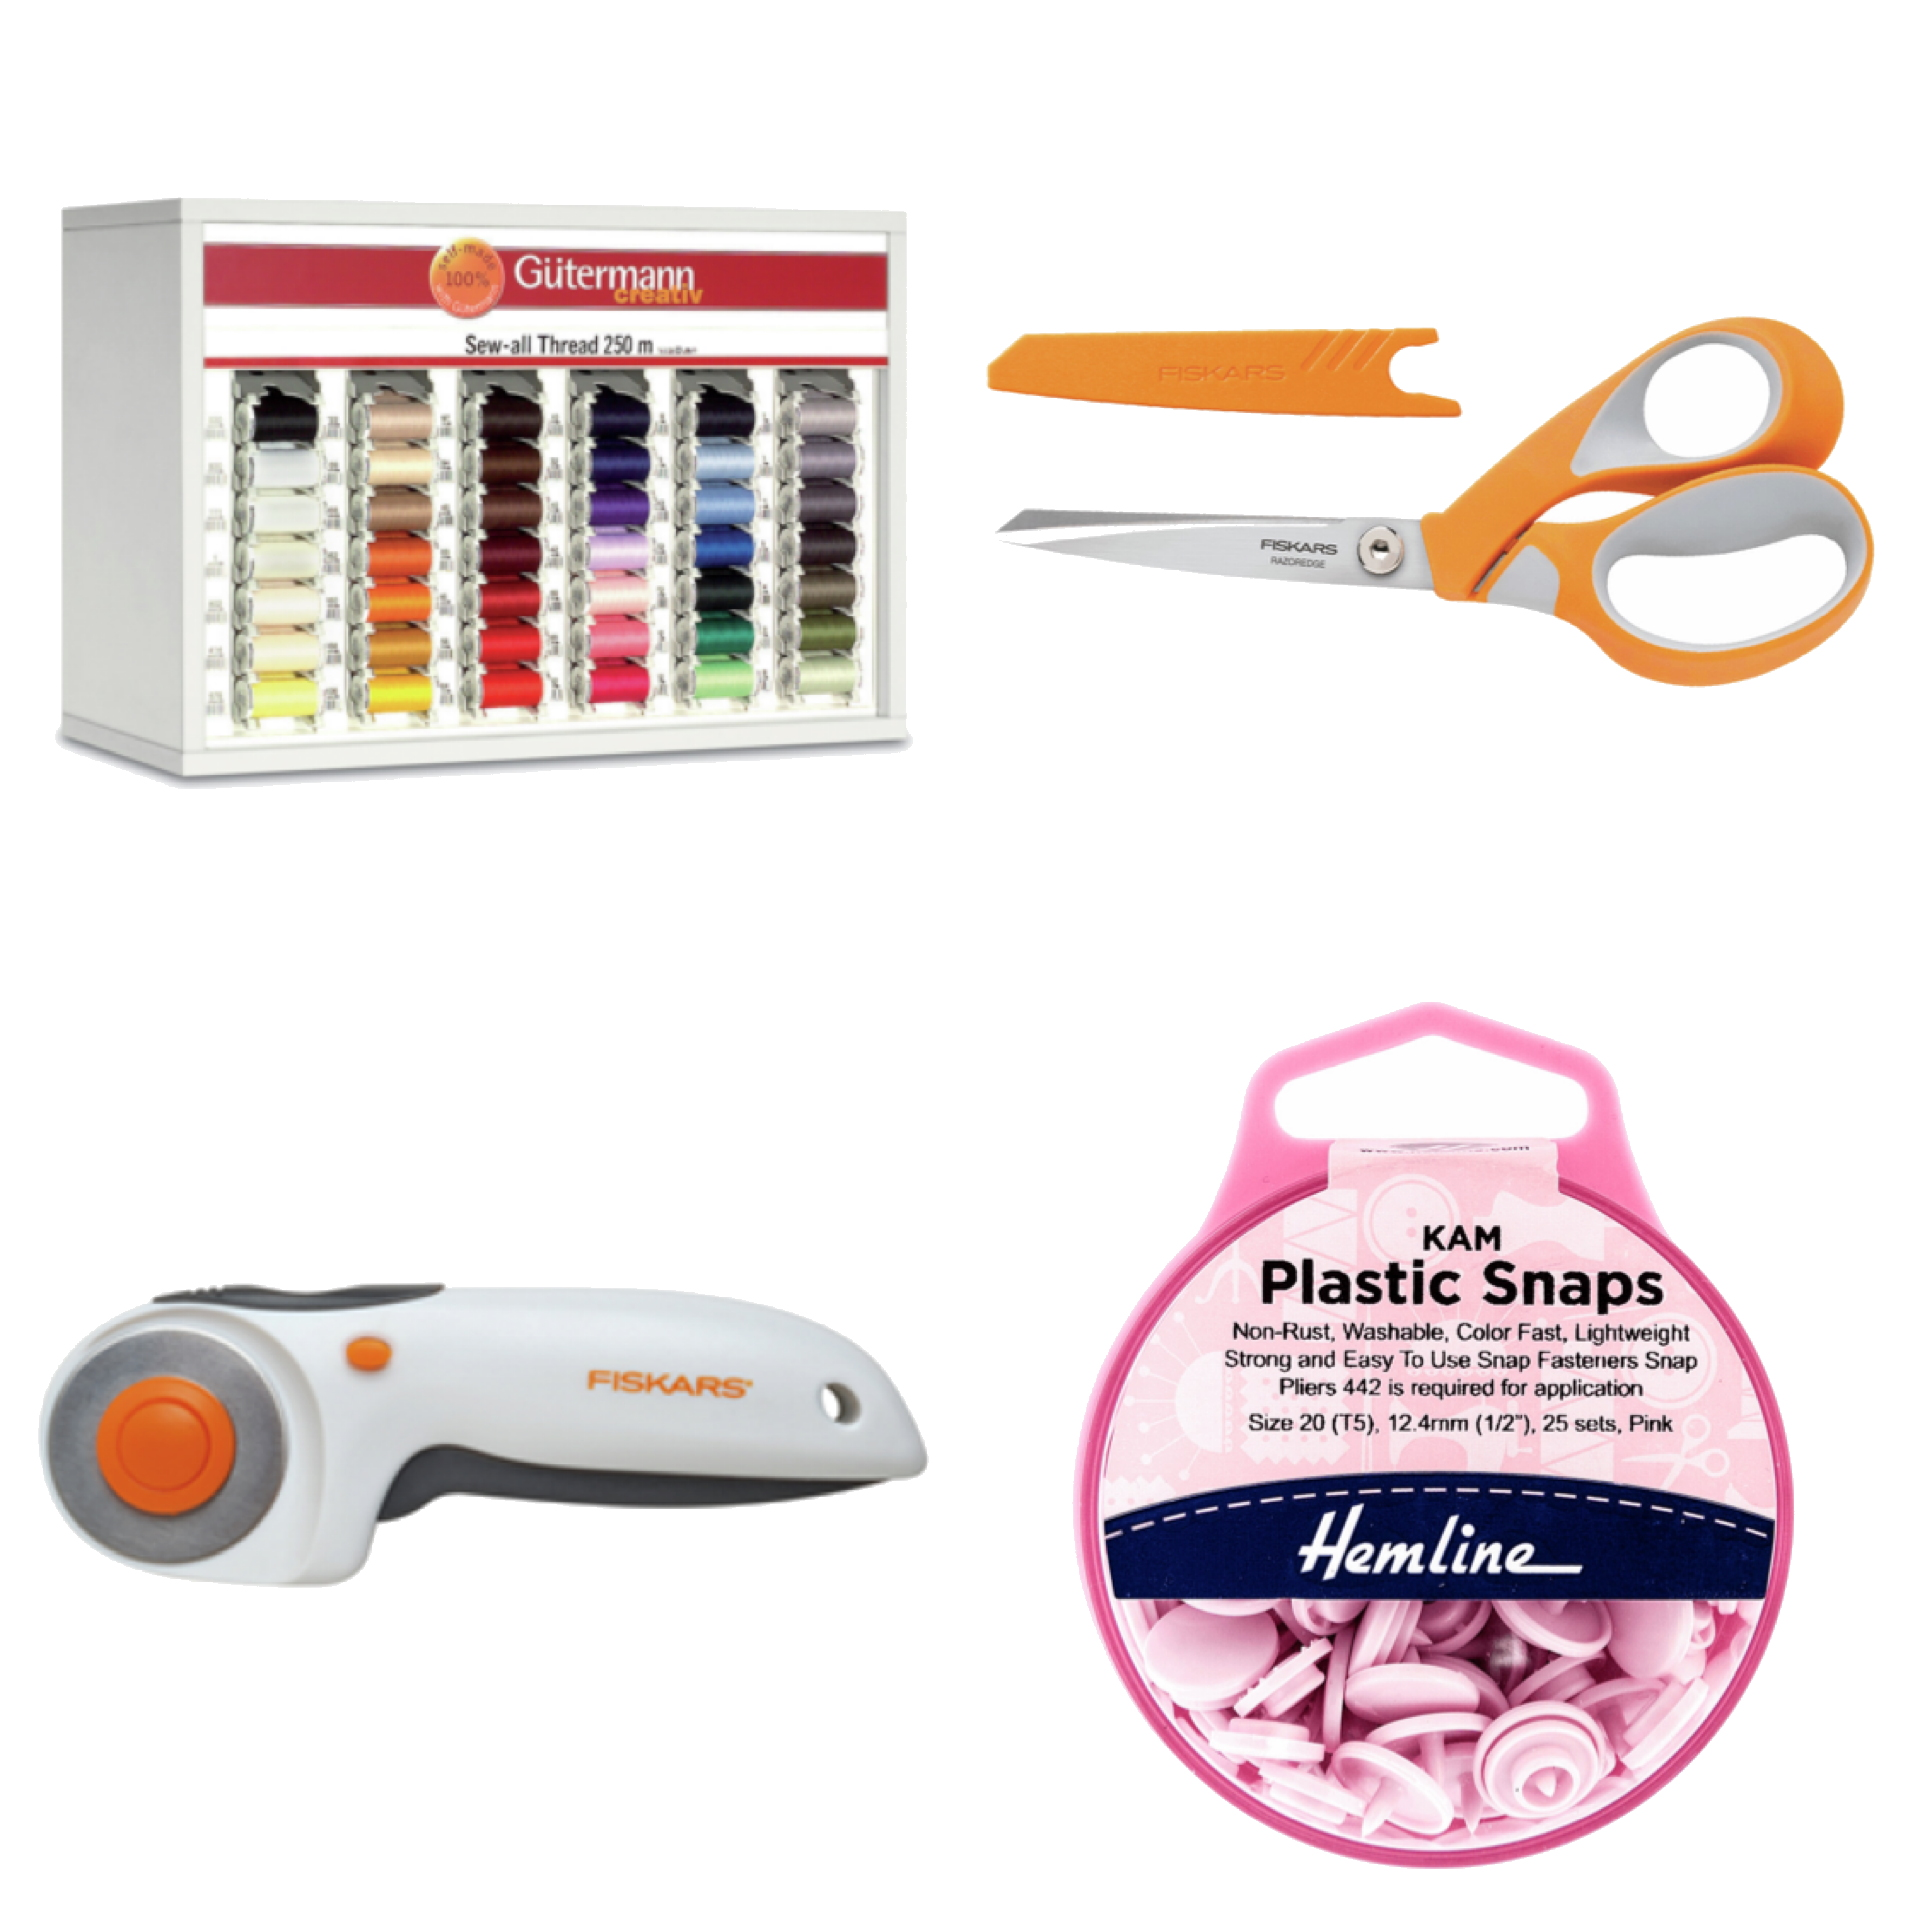 sewing scissors, rotary cutters, buttons